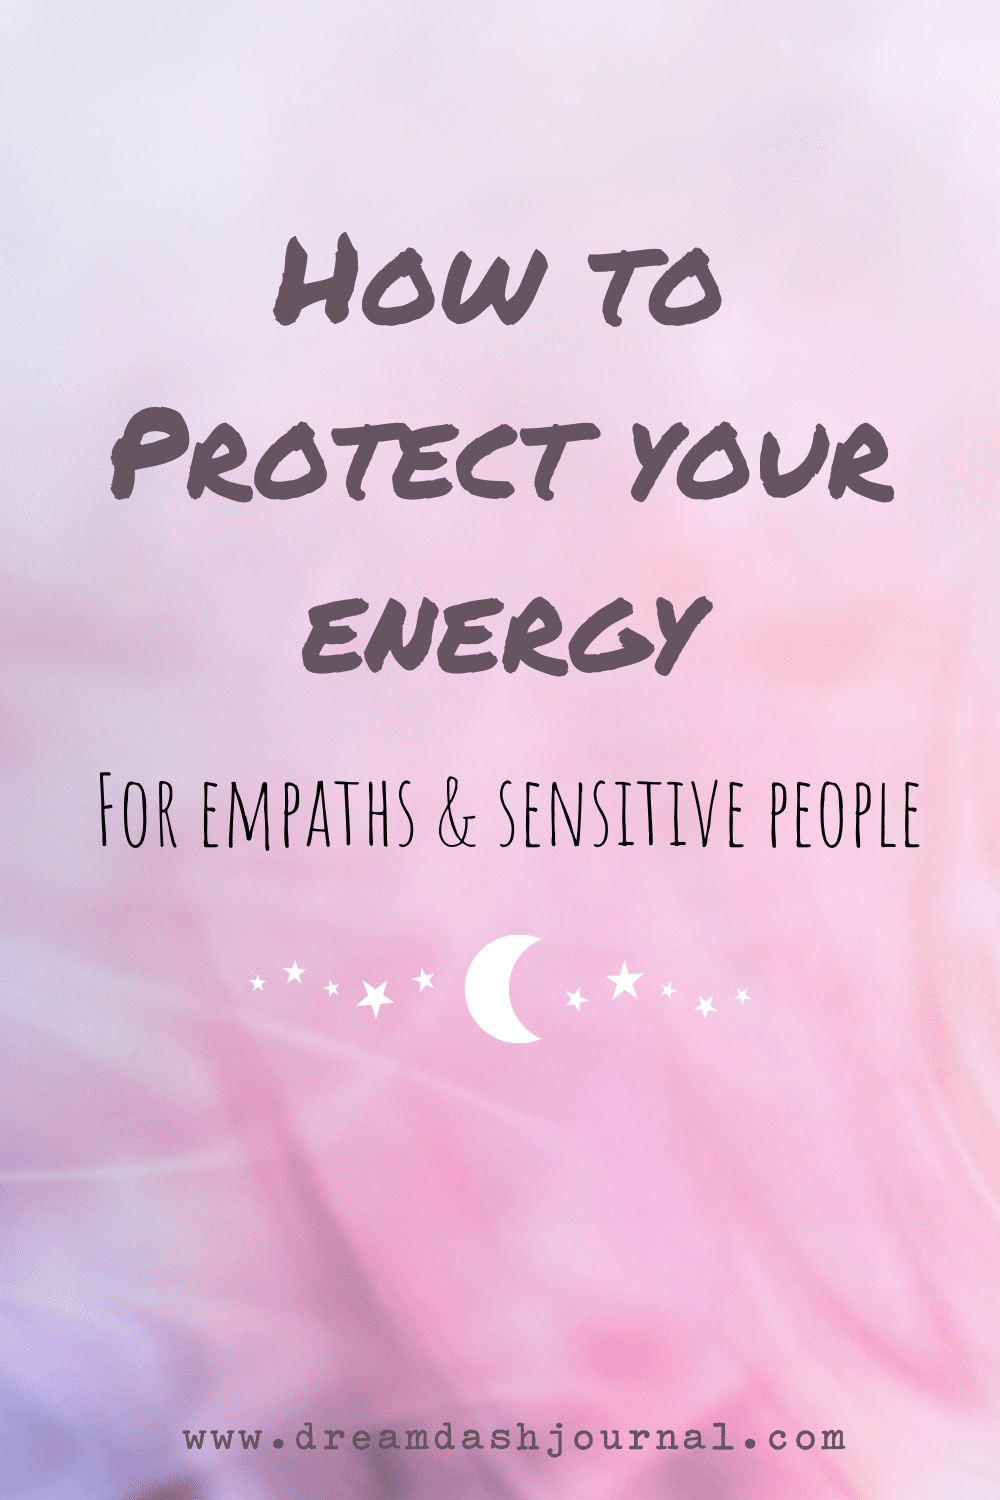 How to Protect Your Energy For Empaths & Sensitive People